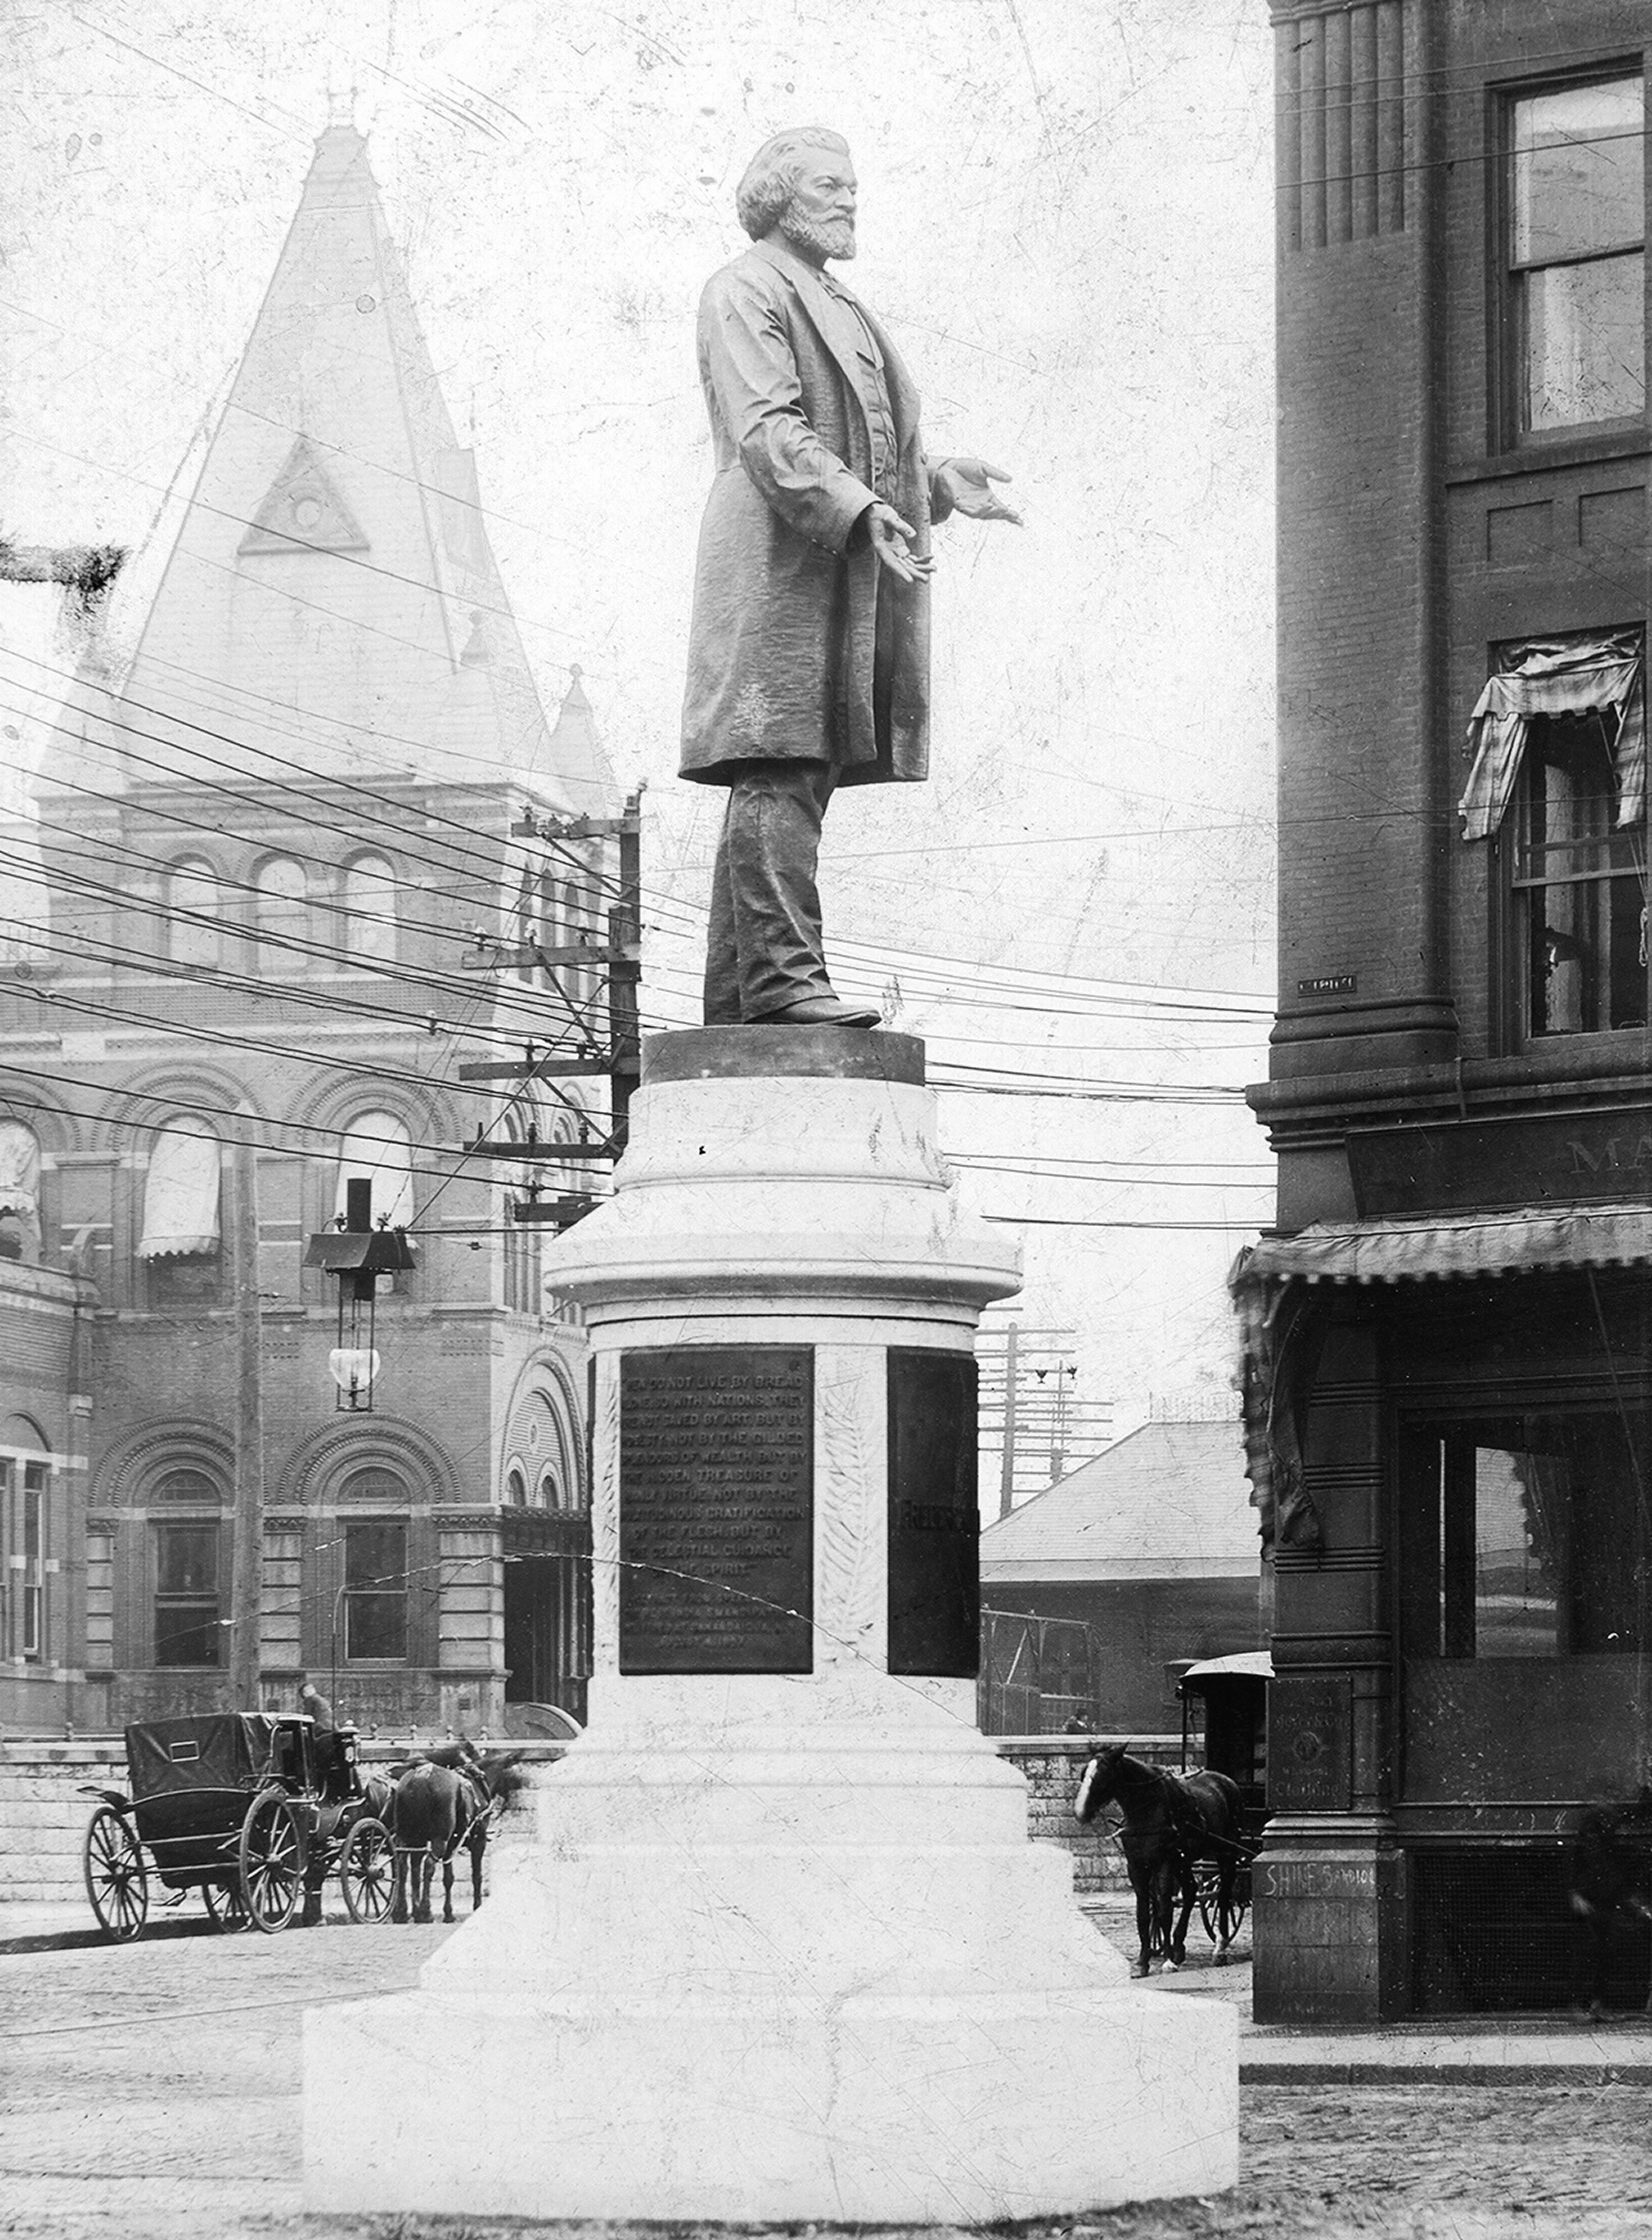 A monument built to honor Frederick Douglass, a statue of Douglass stands on top of a stone base in Rochester, New York, 1900.